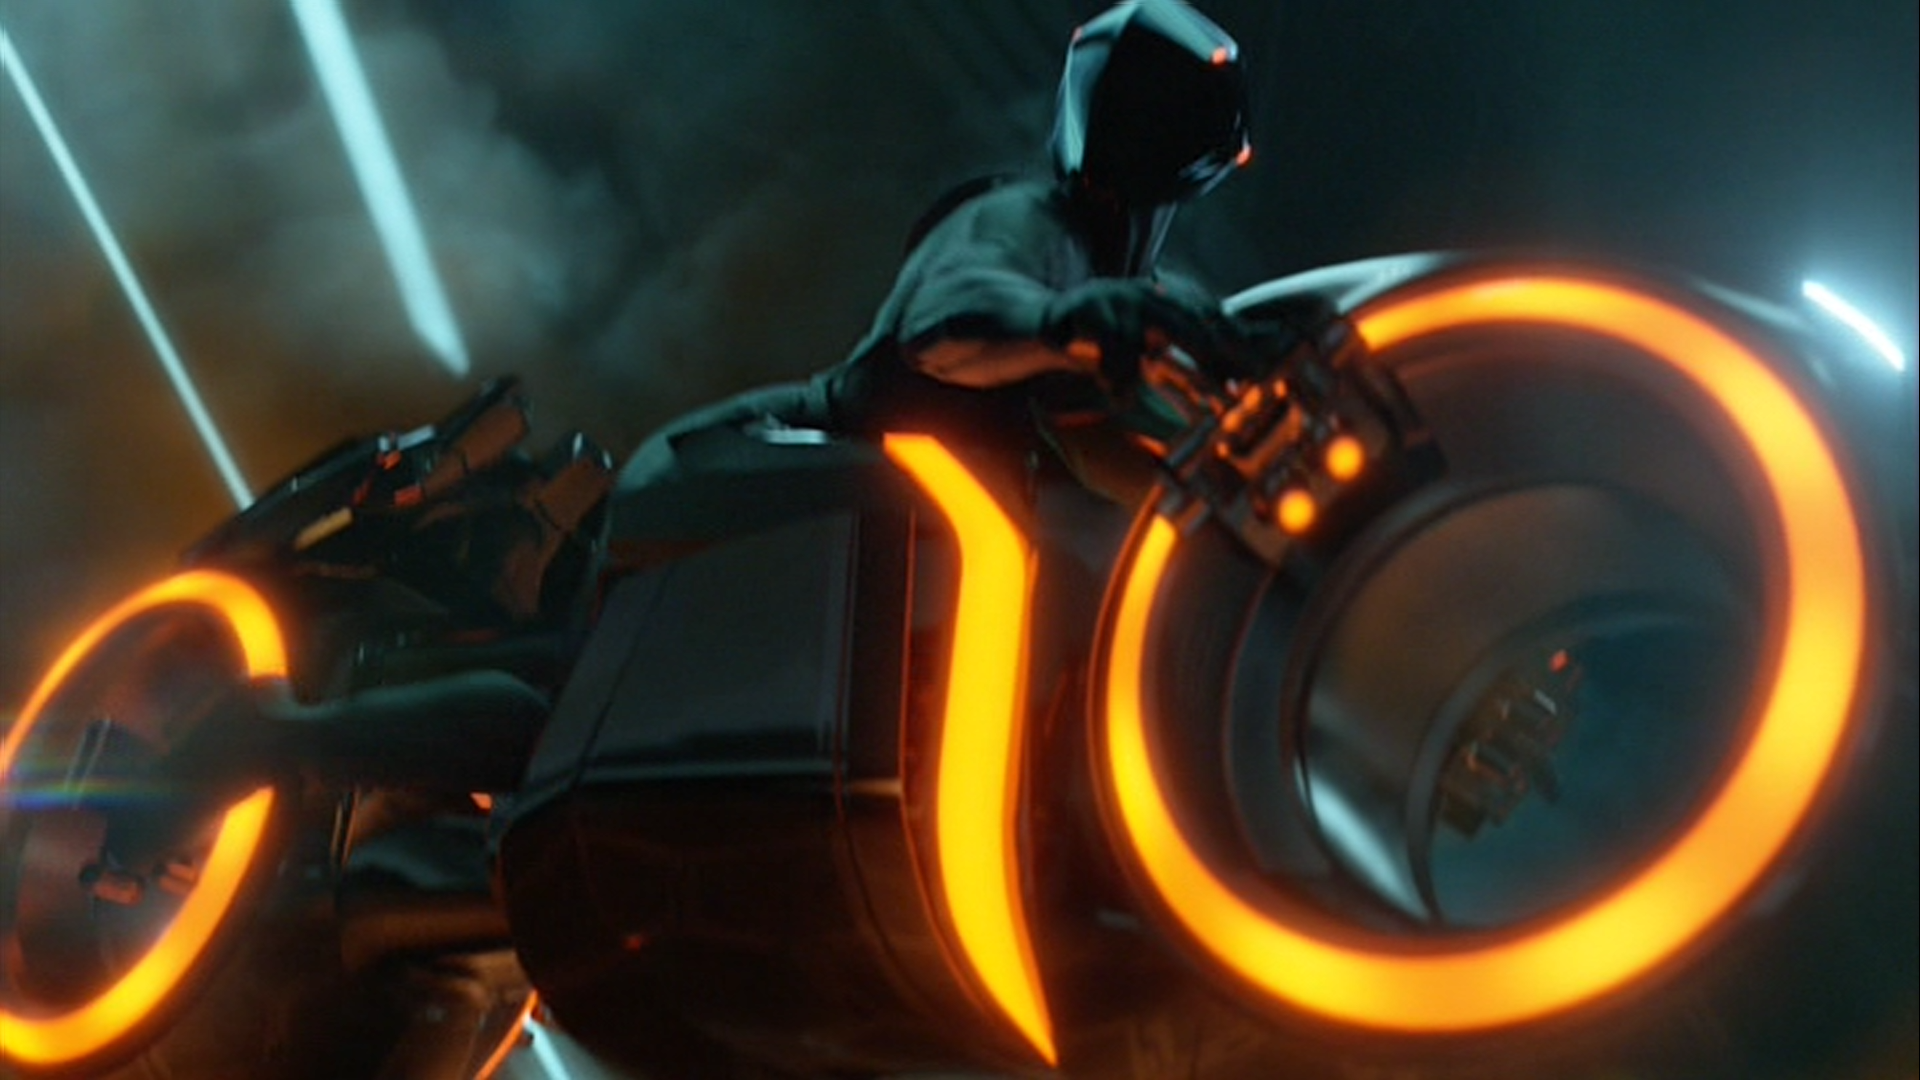 Tron Legacy Images WallPaper HD Wallpaper And Background Photos